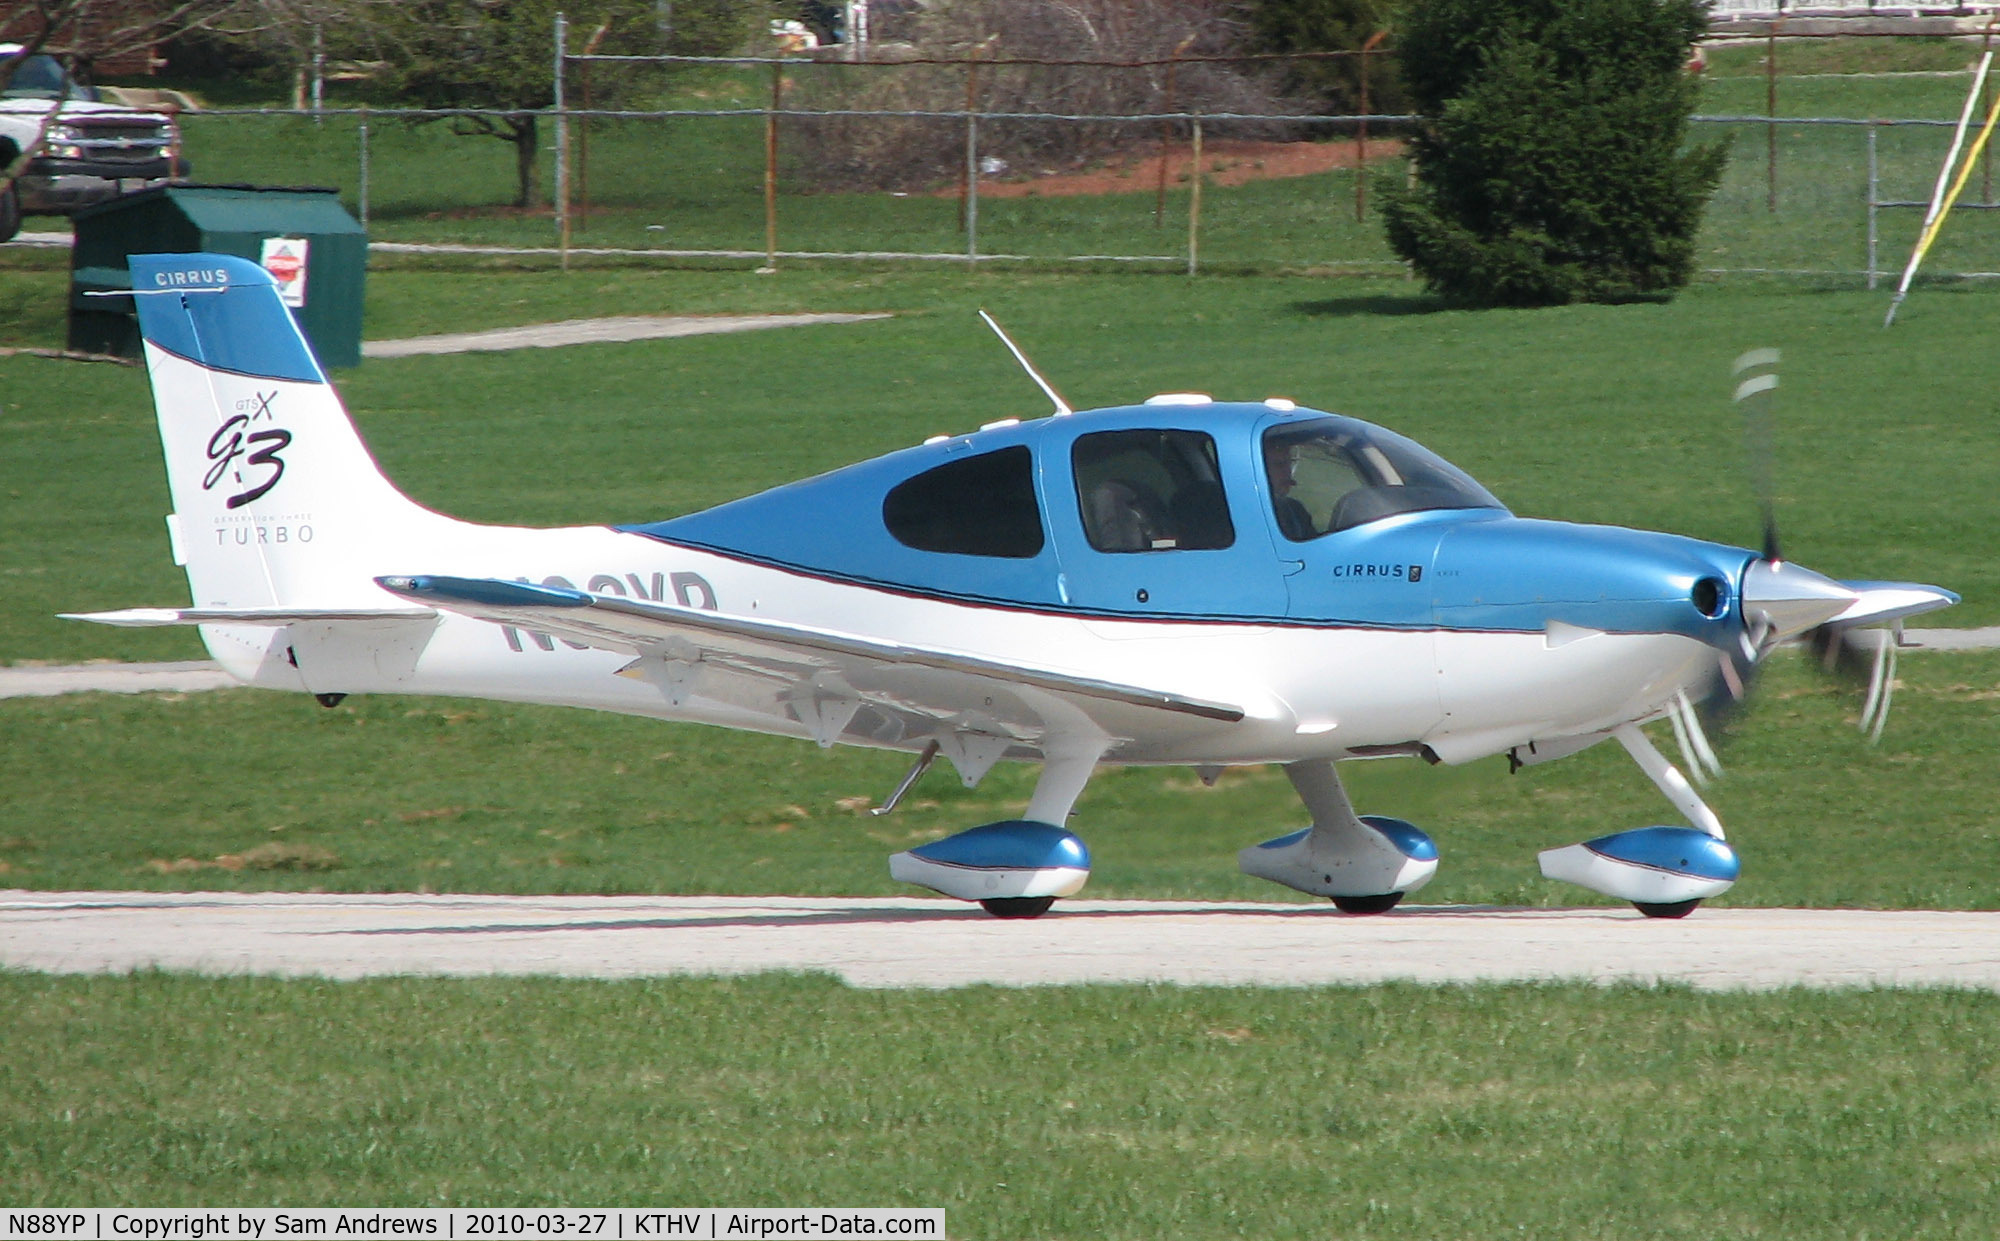 N88YP, 2007 Cirrus SR22 G3 GTSX Turbo C/N 2584, Taking off from 17